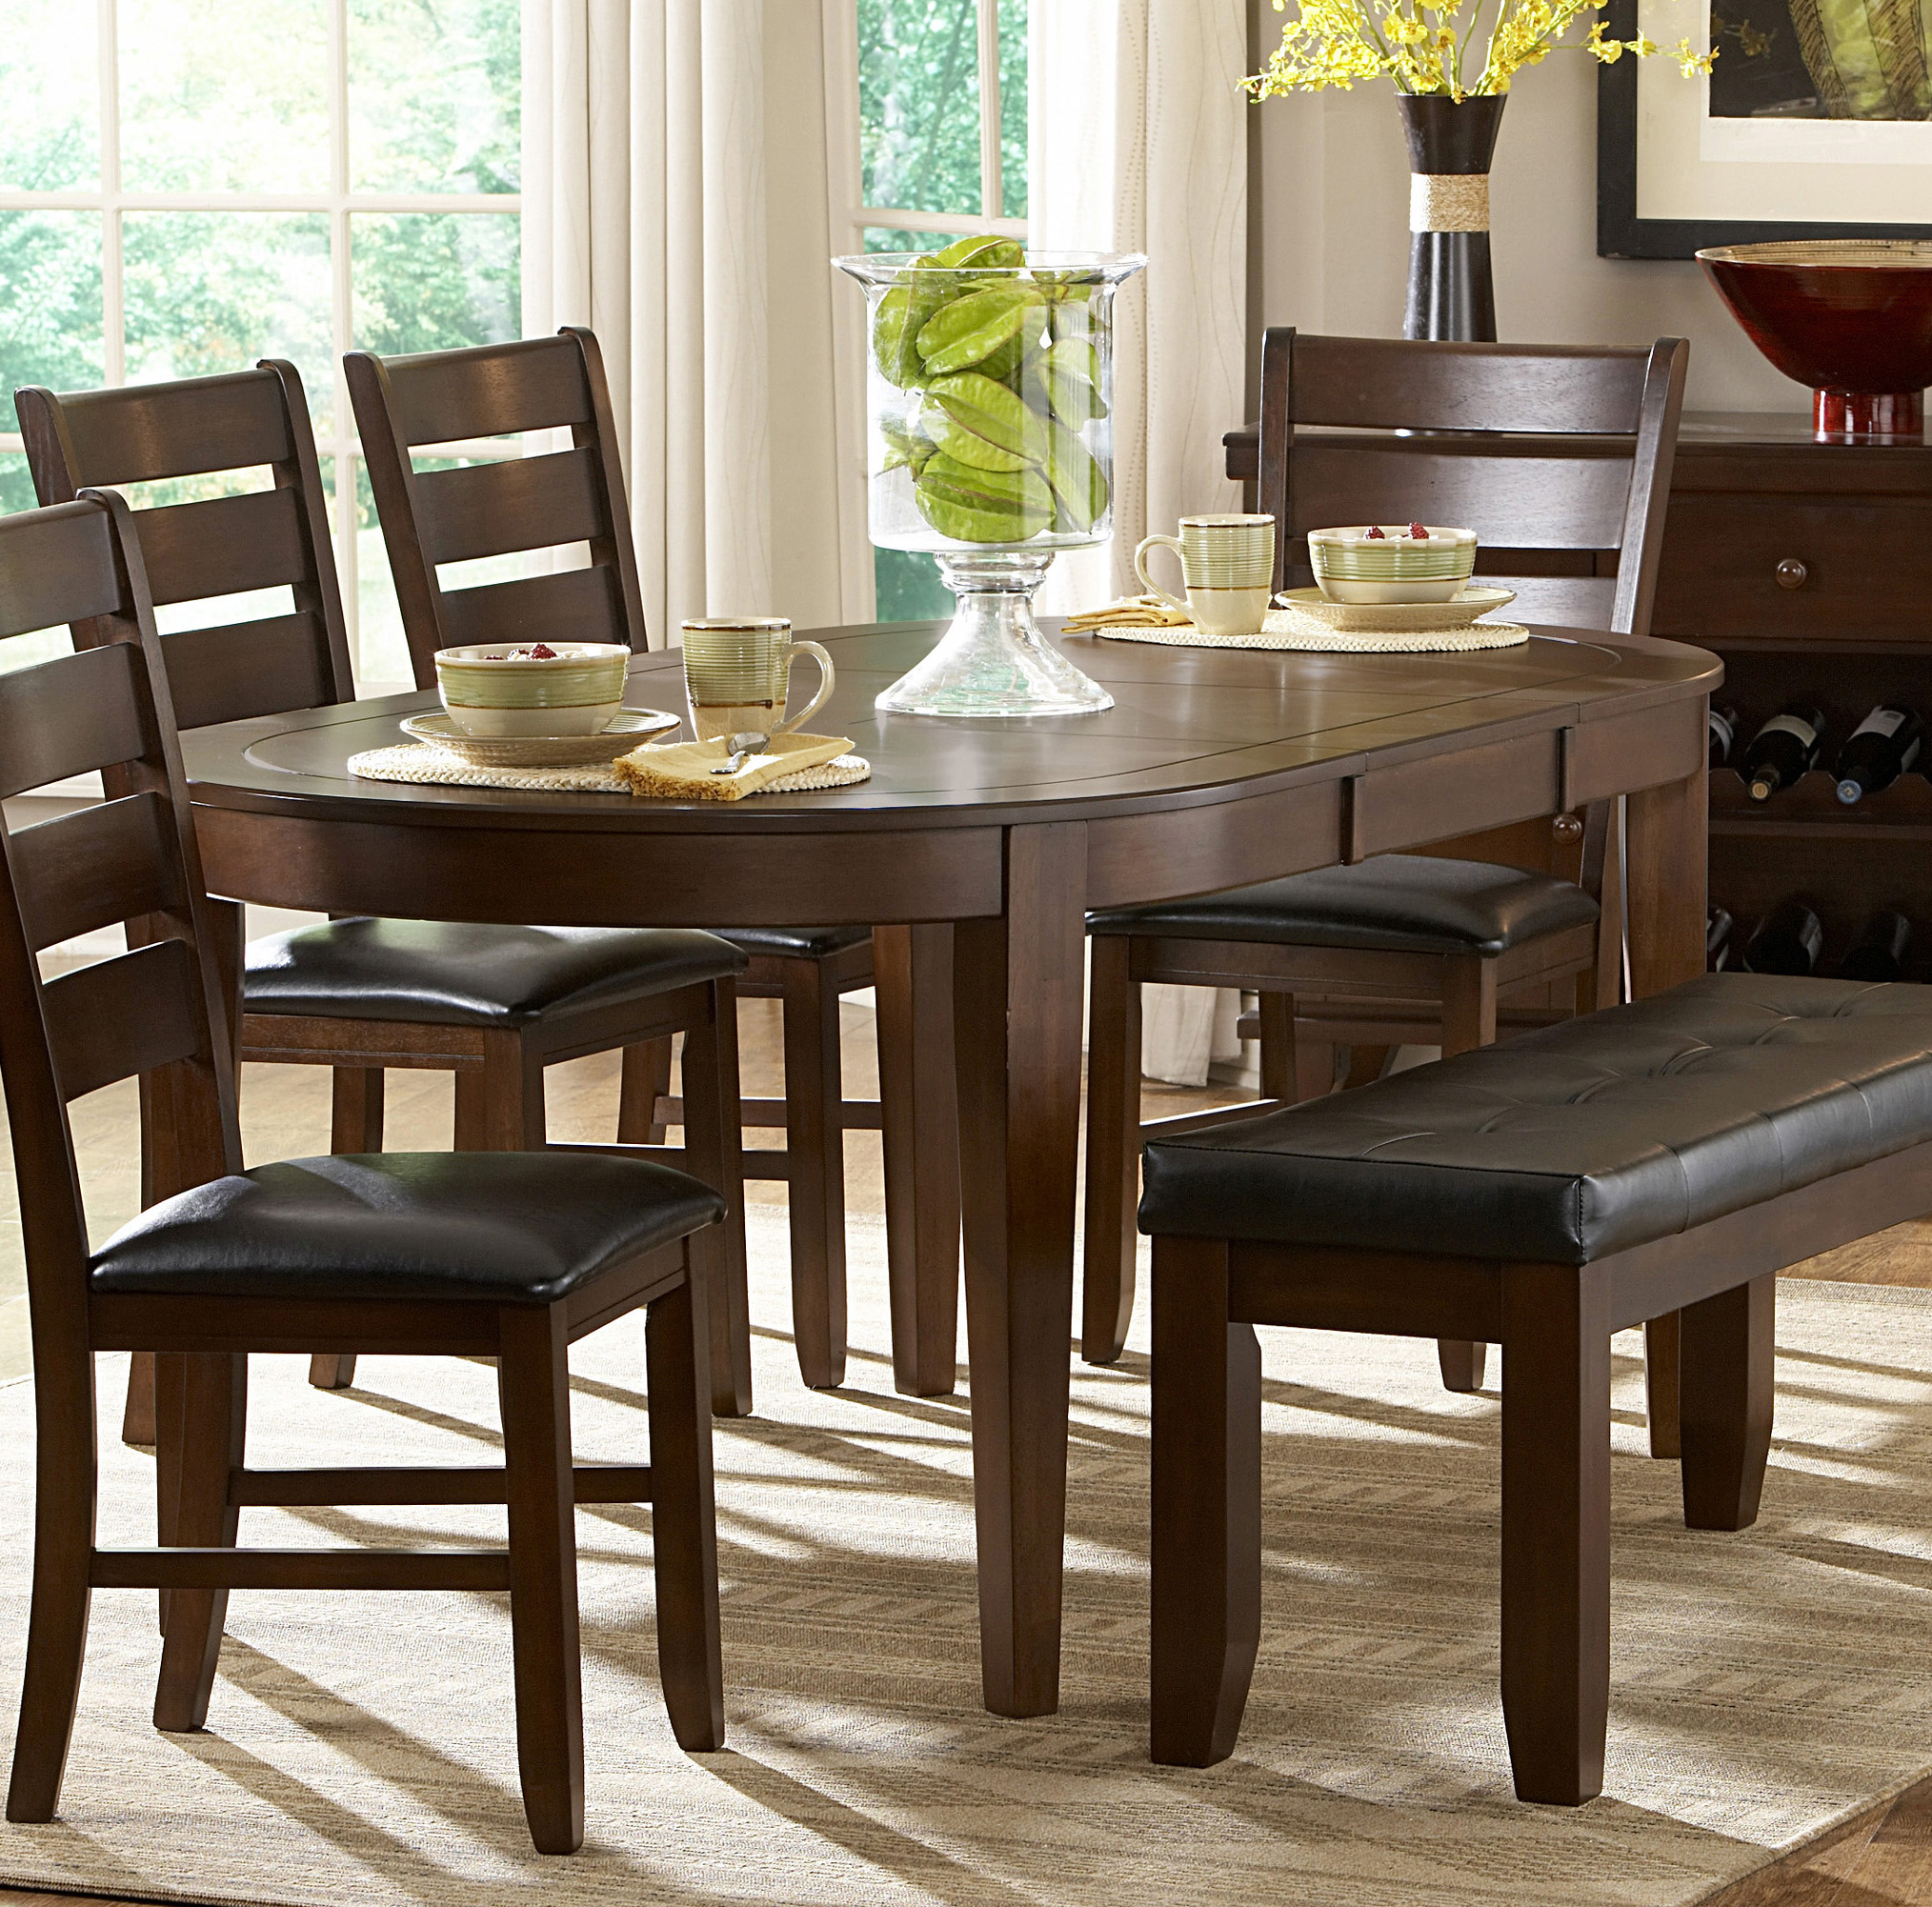 Homelegance ameillia dark oak oval dining table dallas tx dining room dining tables Dining room furniture dallas